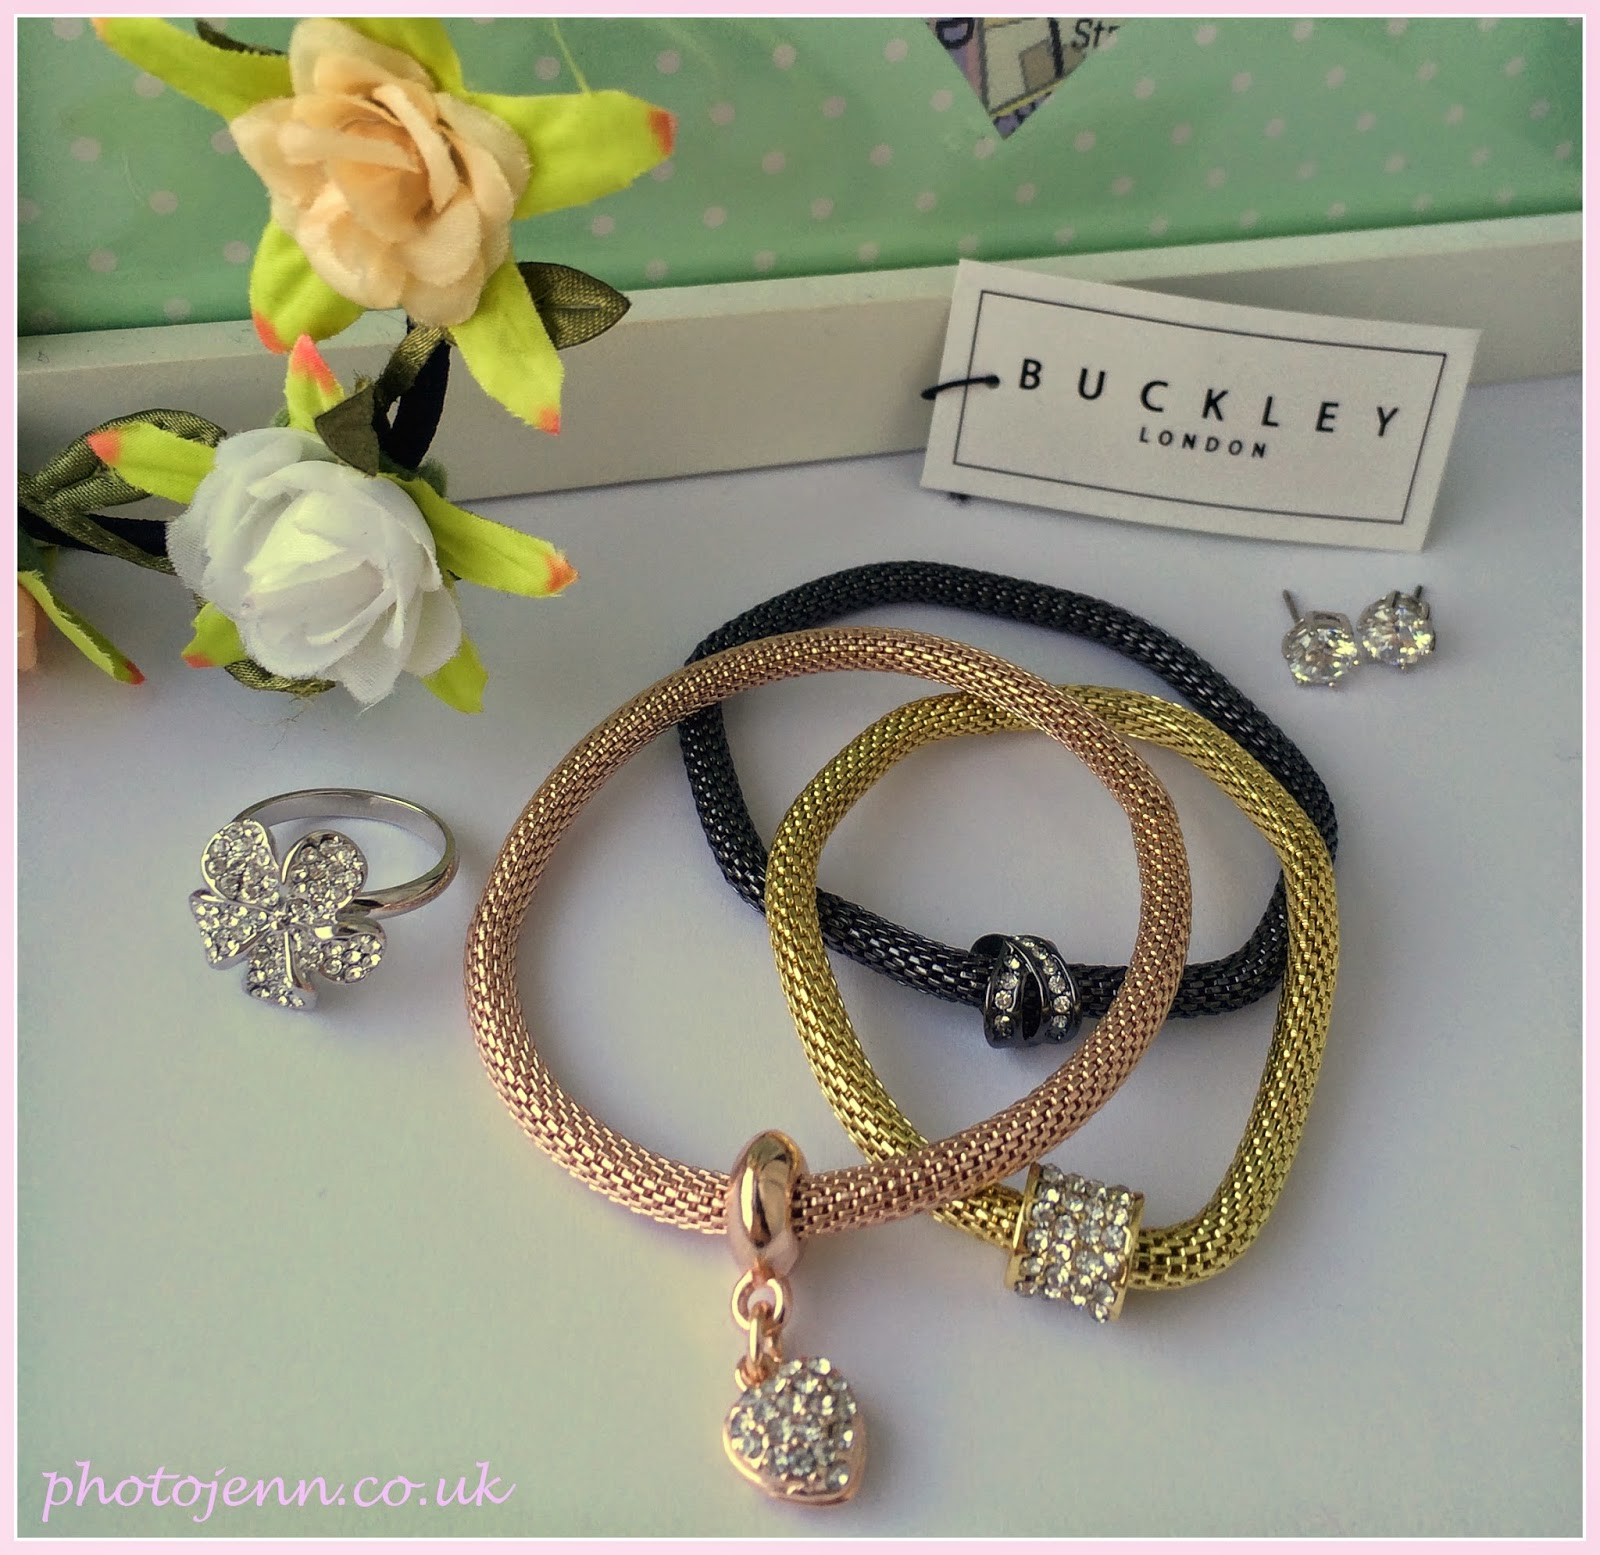 buckley-london-jewellery-review